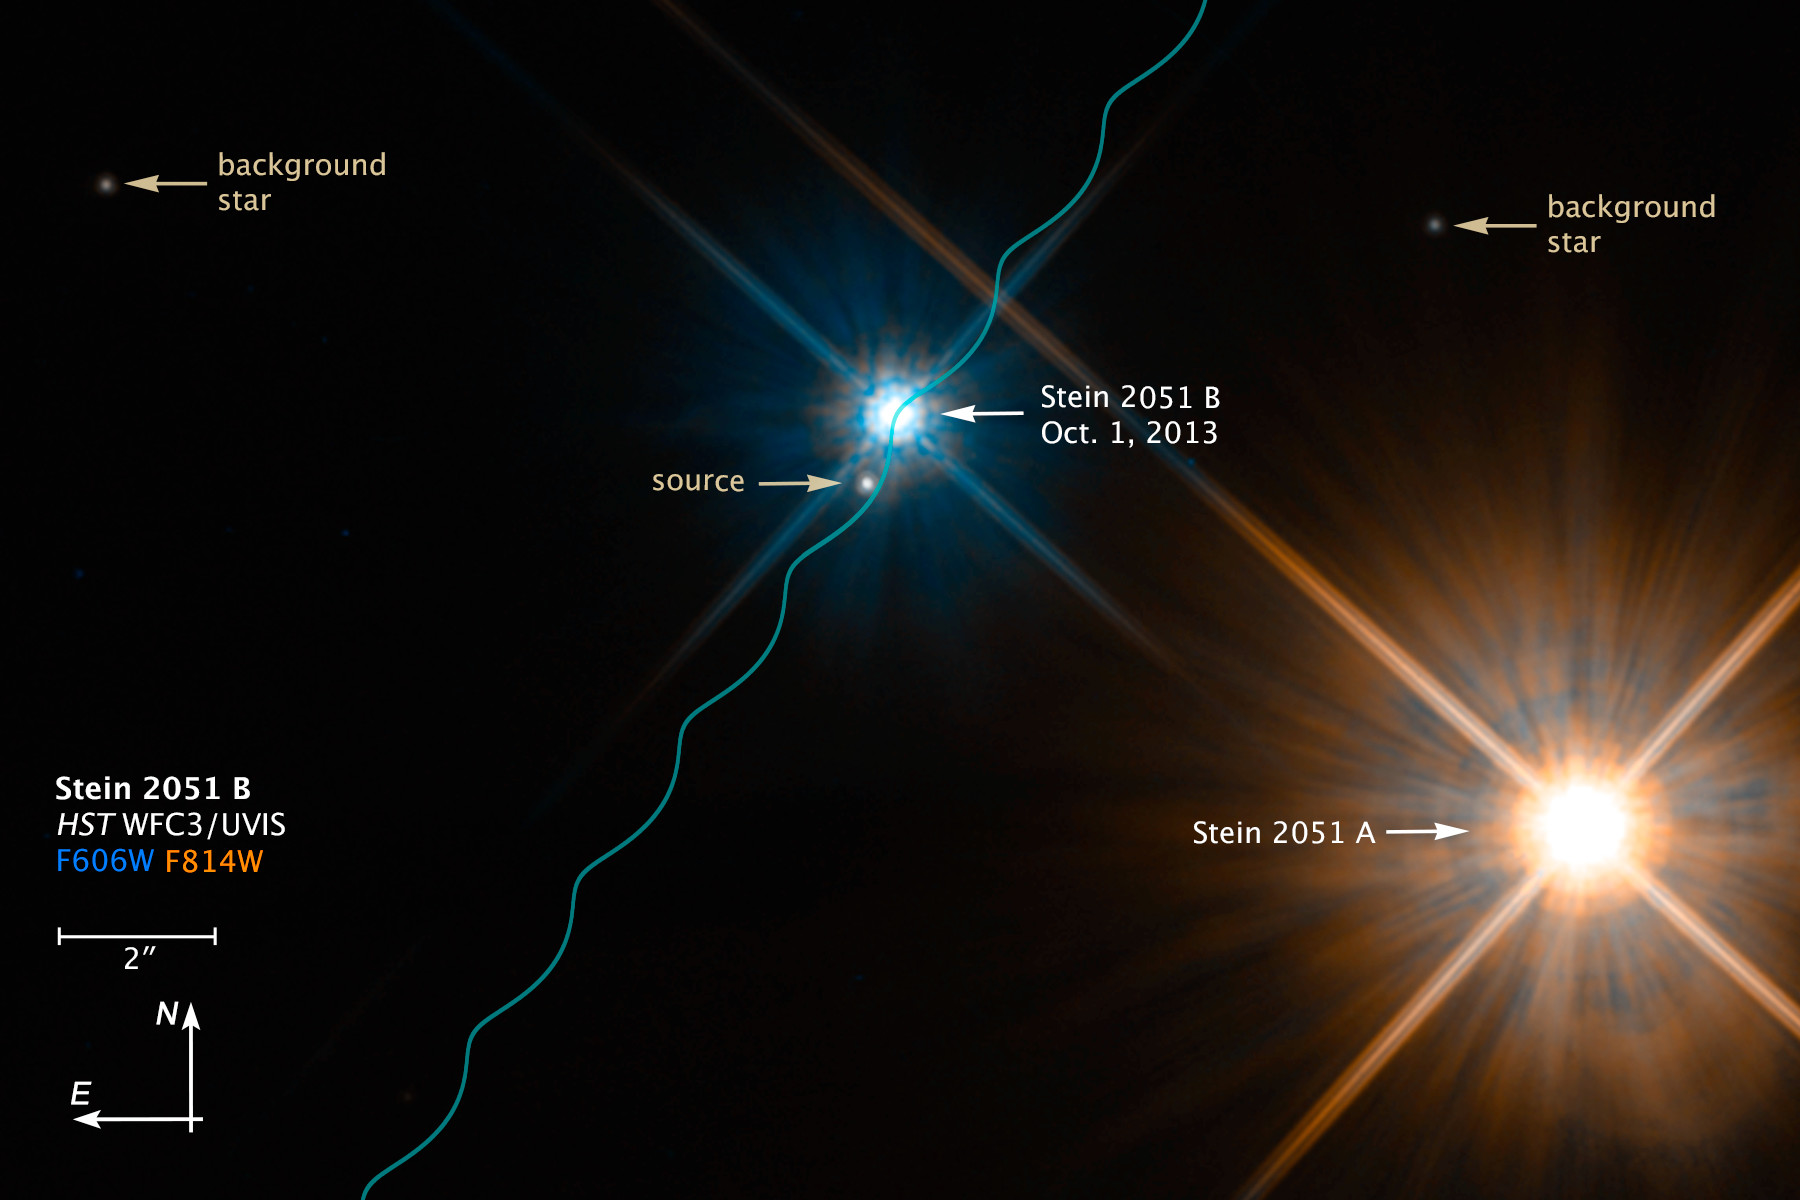 binary star system stein 2051 annotated esahubble